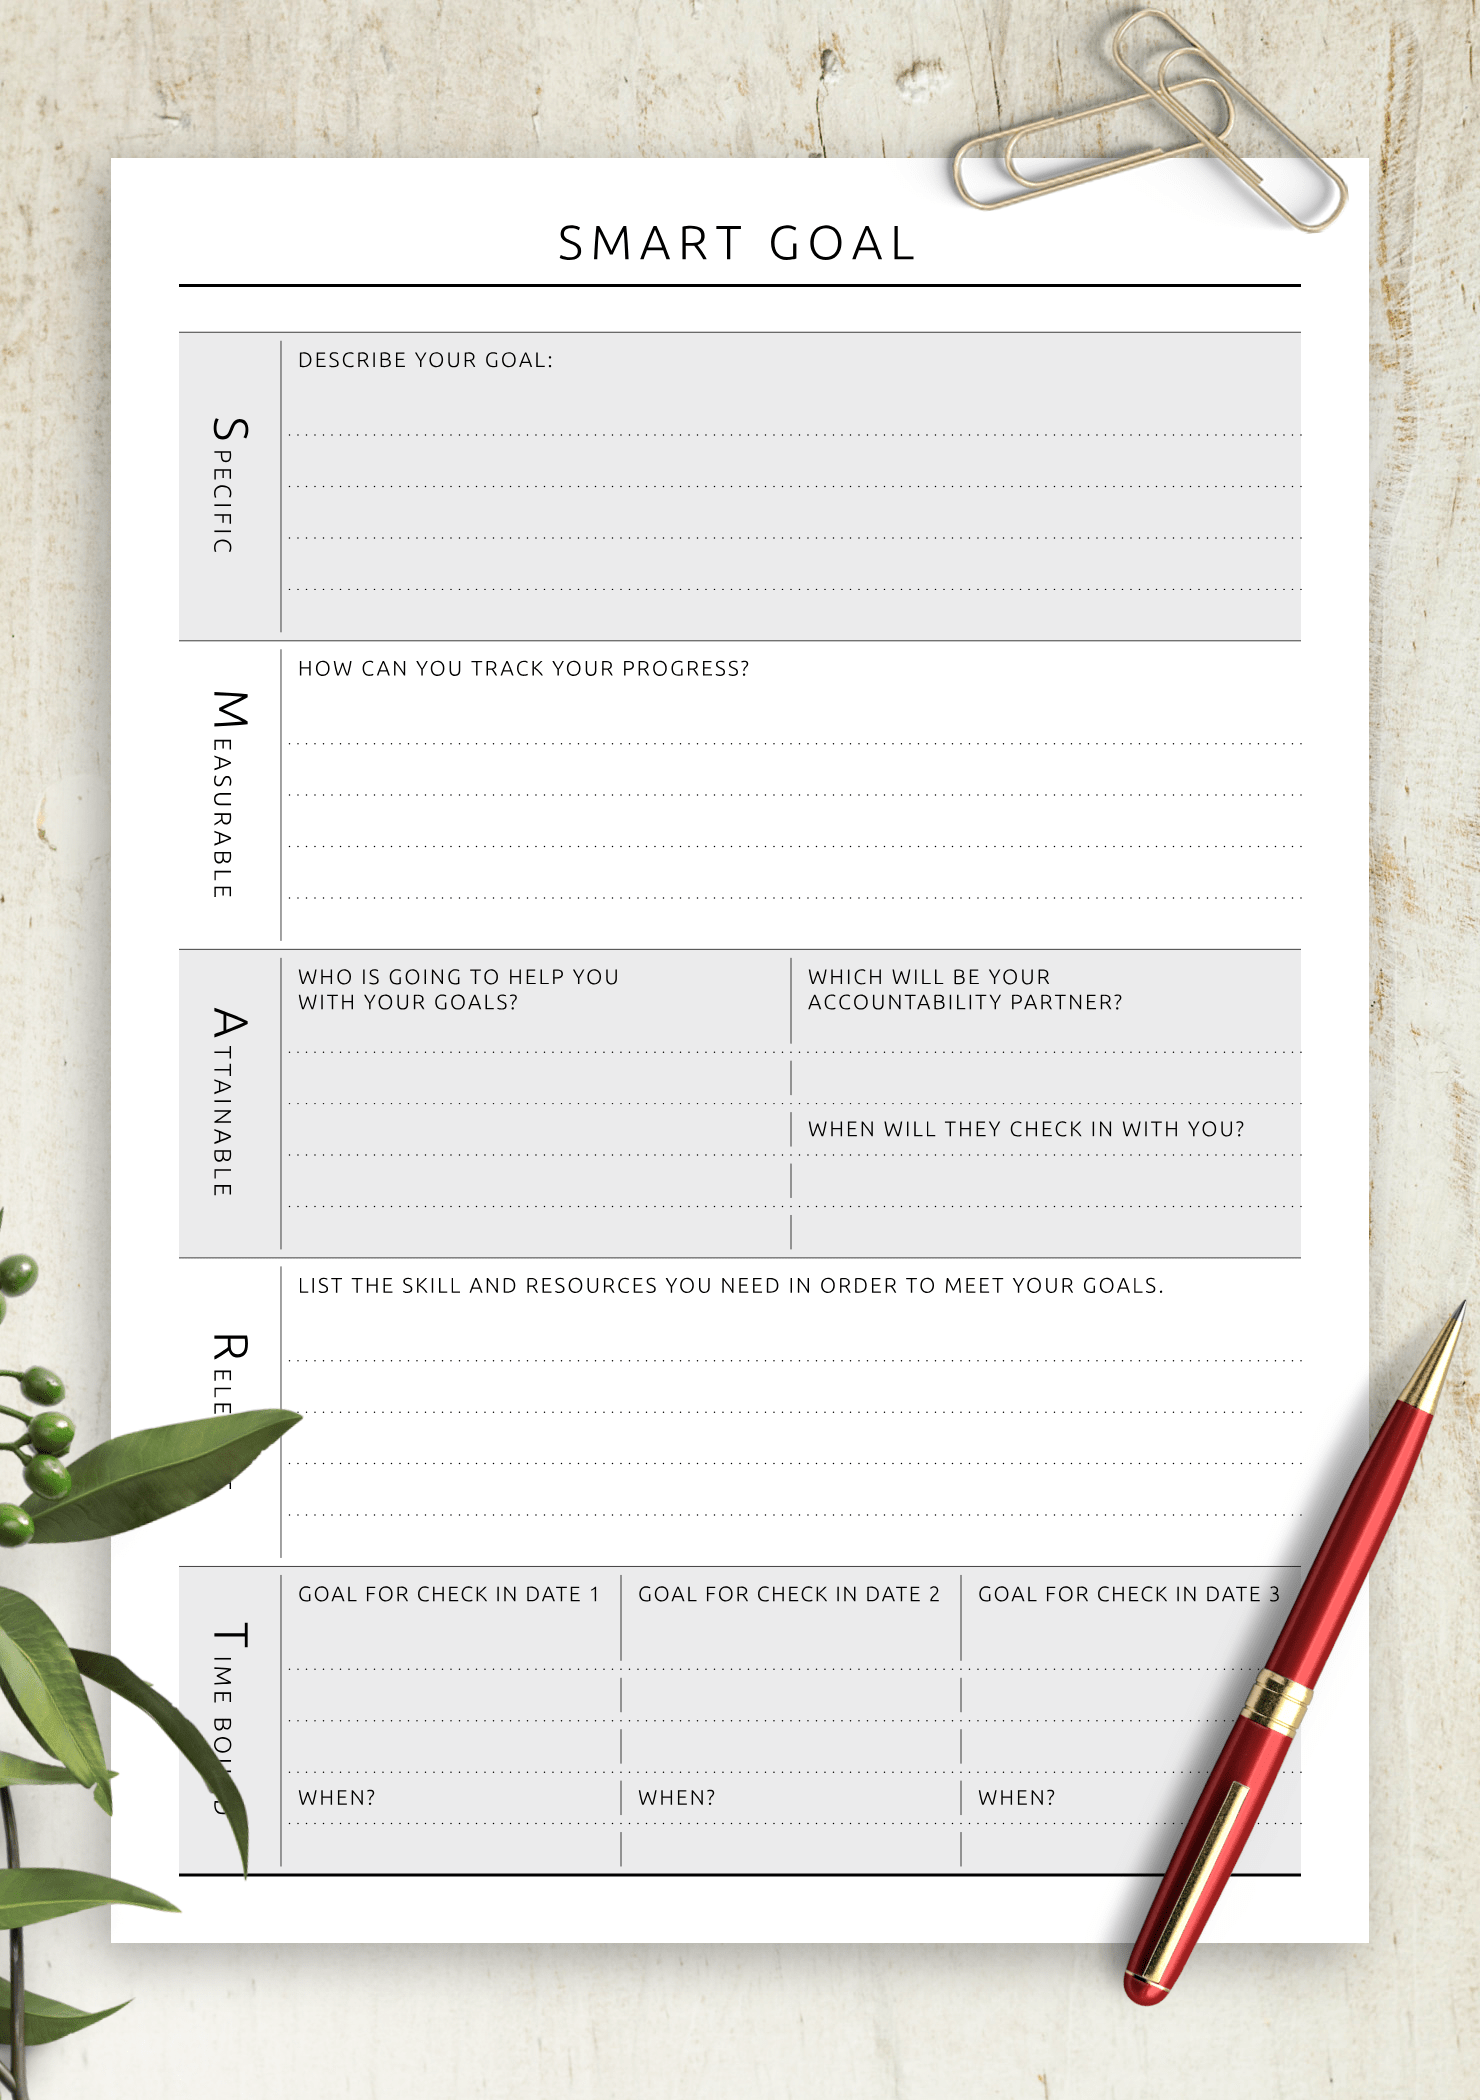 Download Printable Personal Smart Goal Template